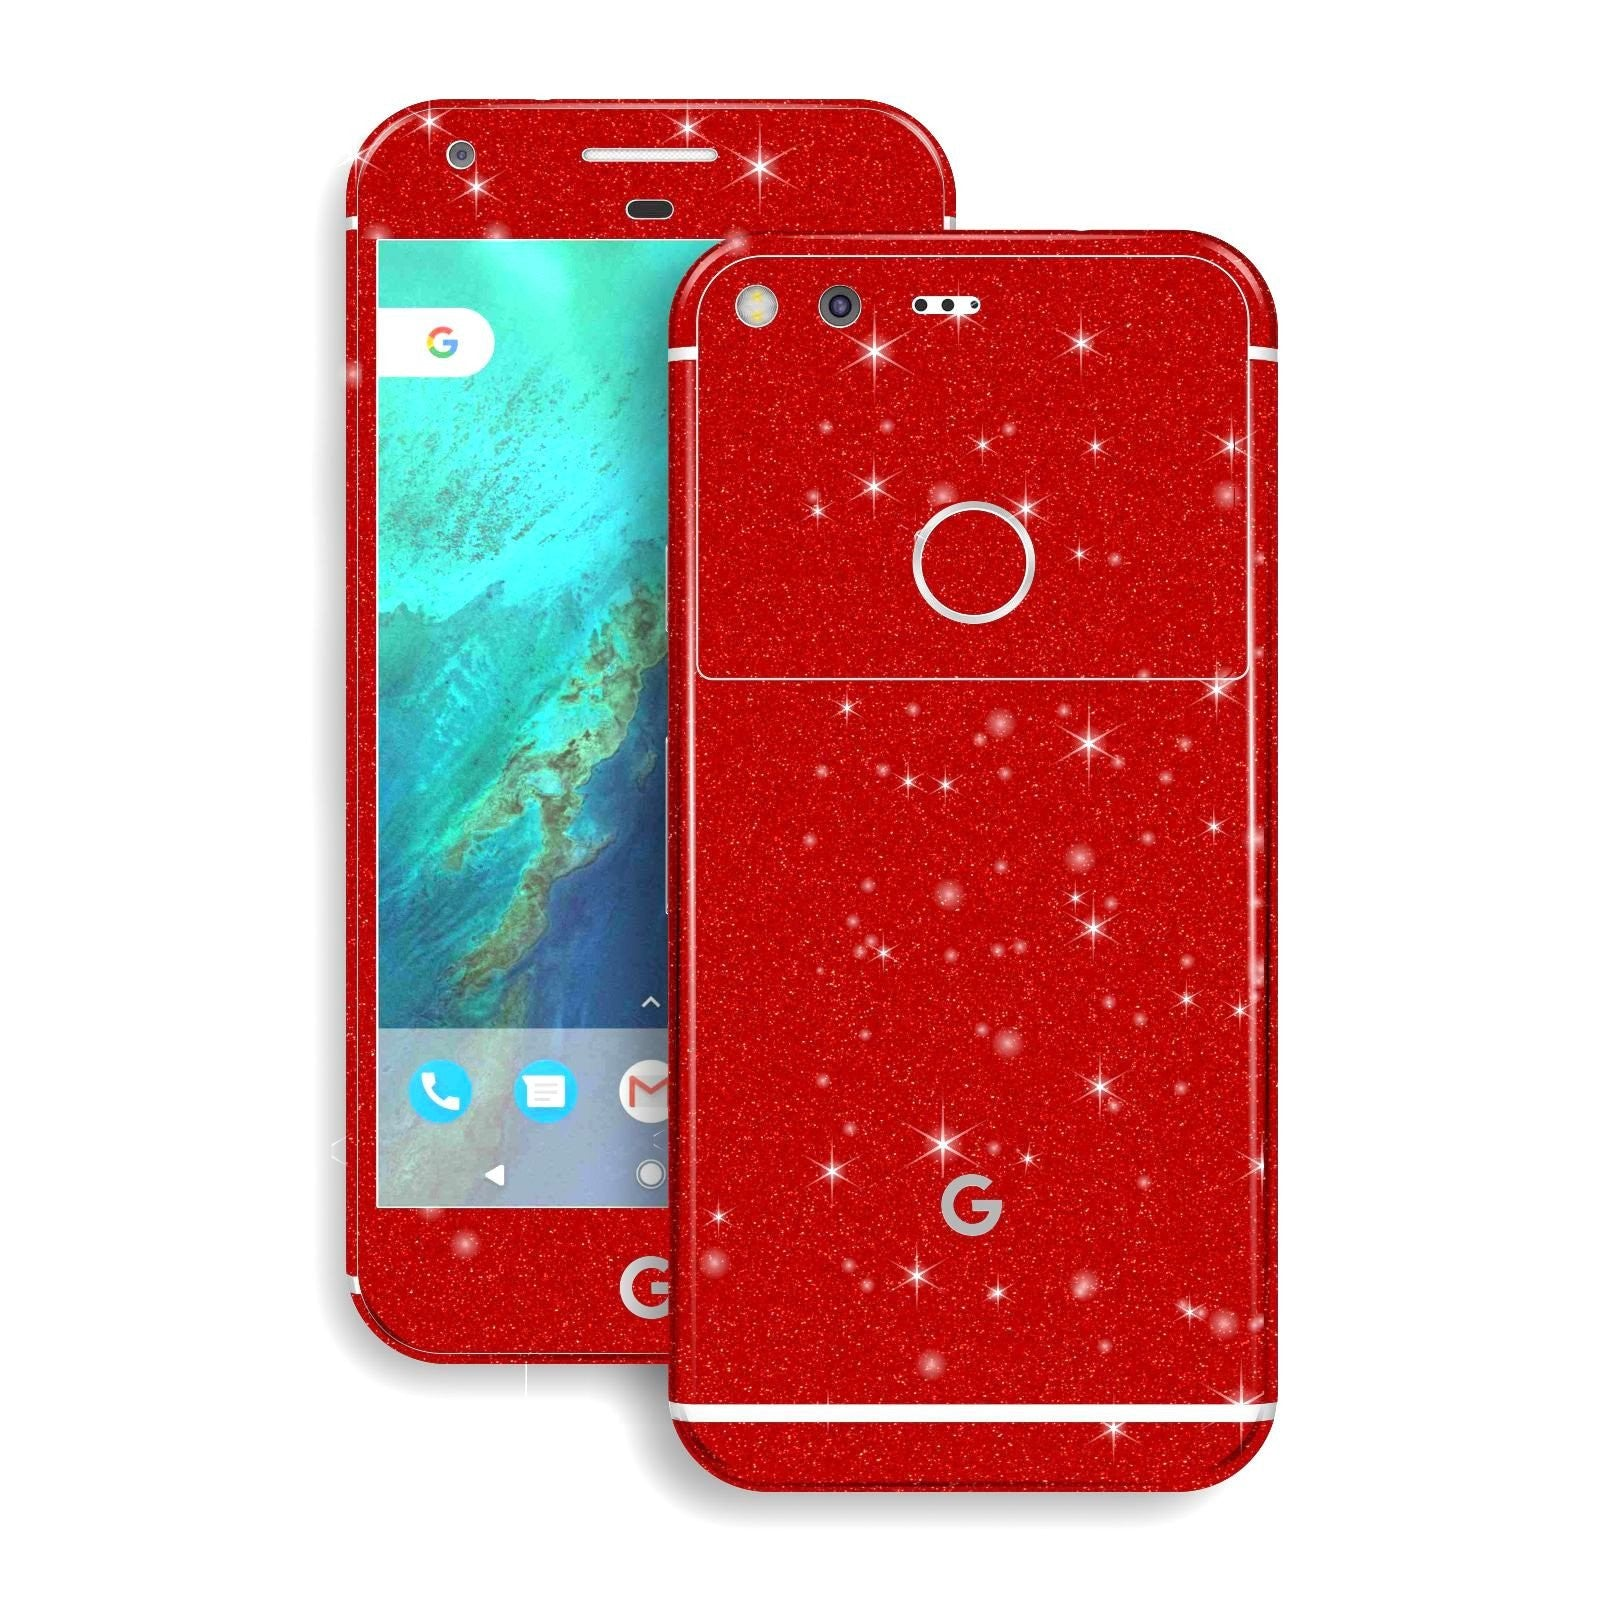 Google Pixel Diamond Red Shimmering Glitter Skin Wrap Decal by EasySkinz